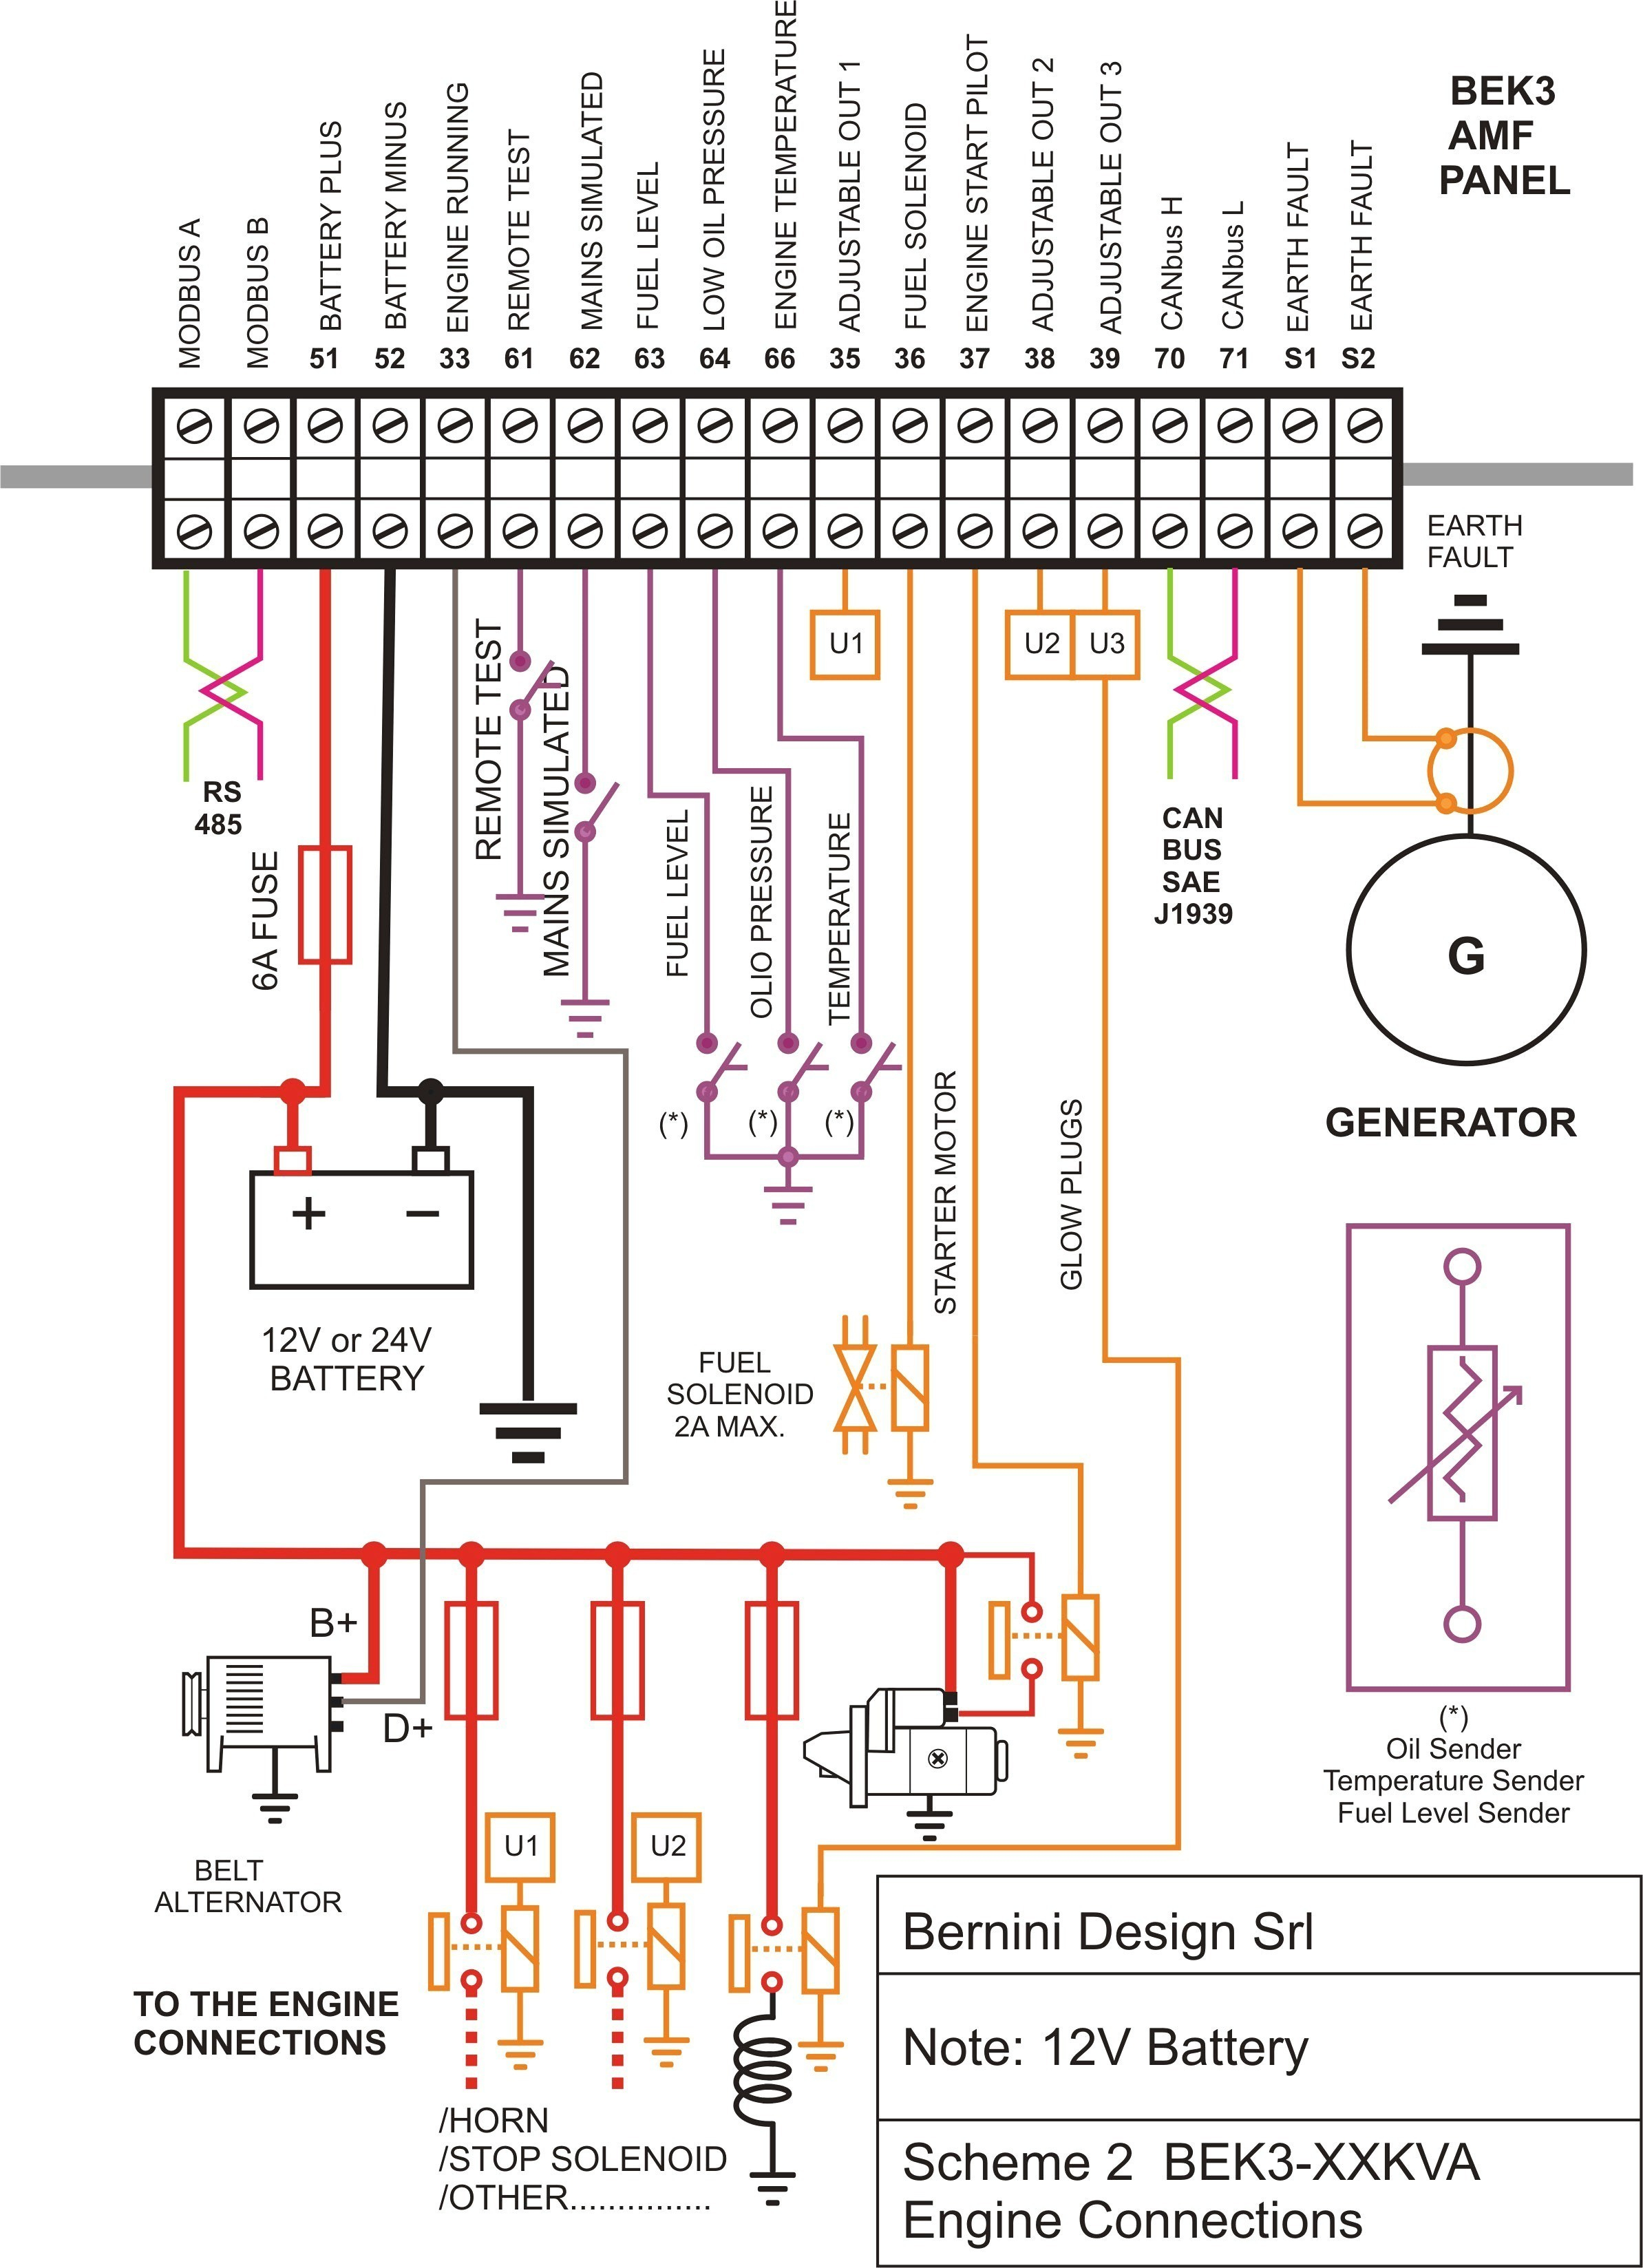 Crestron Wiring Diagrams - wiring diagram on the net on